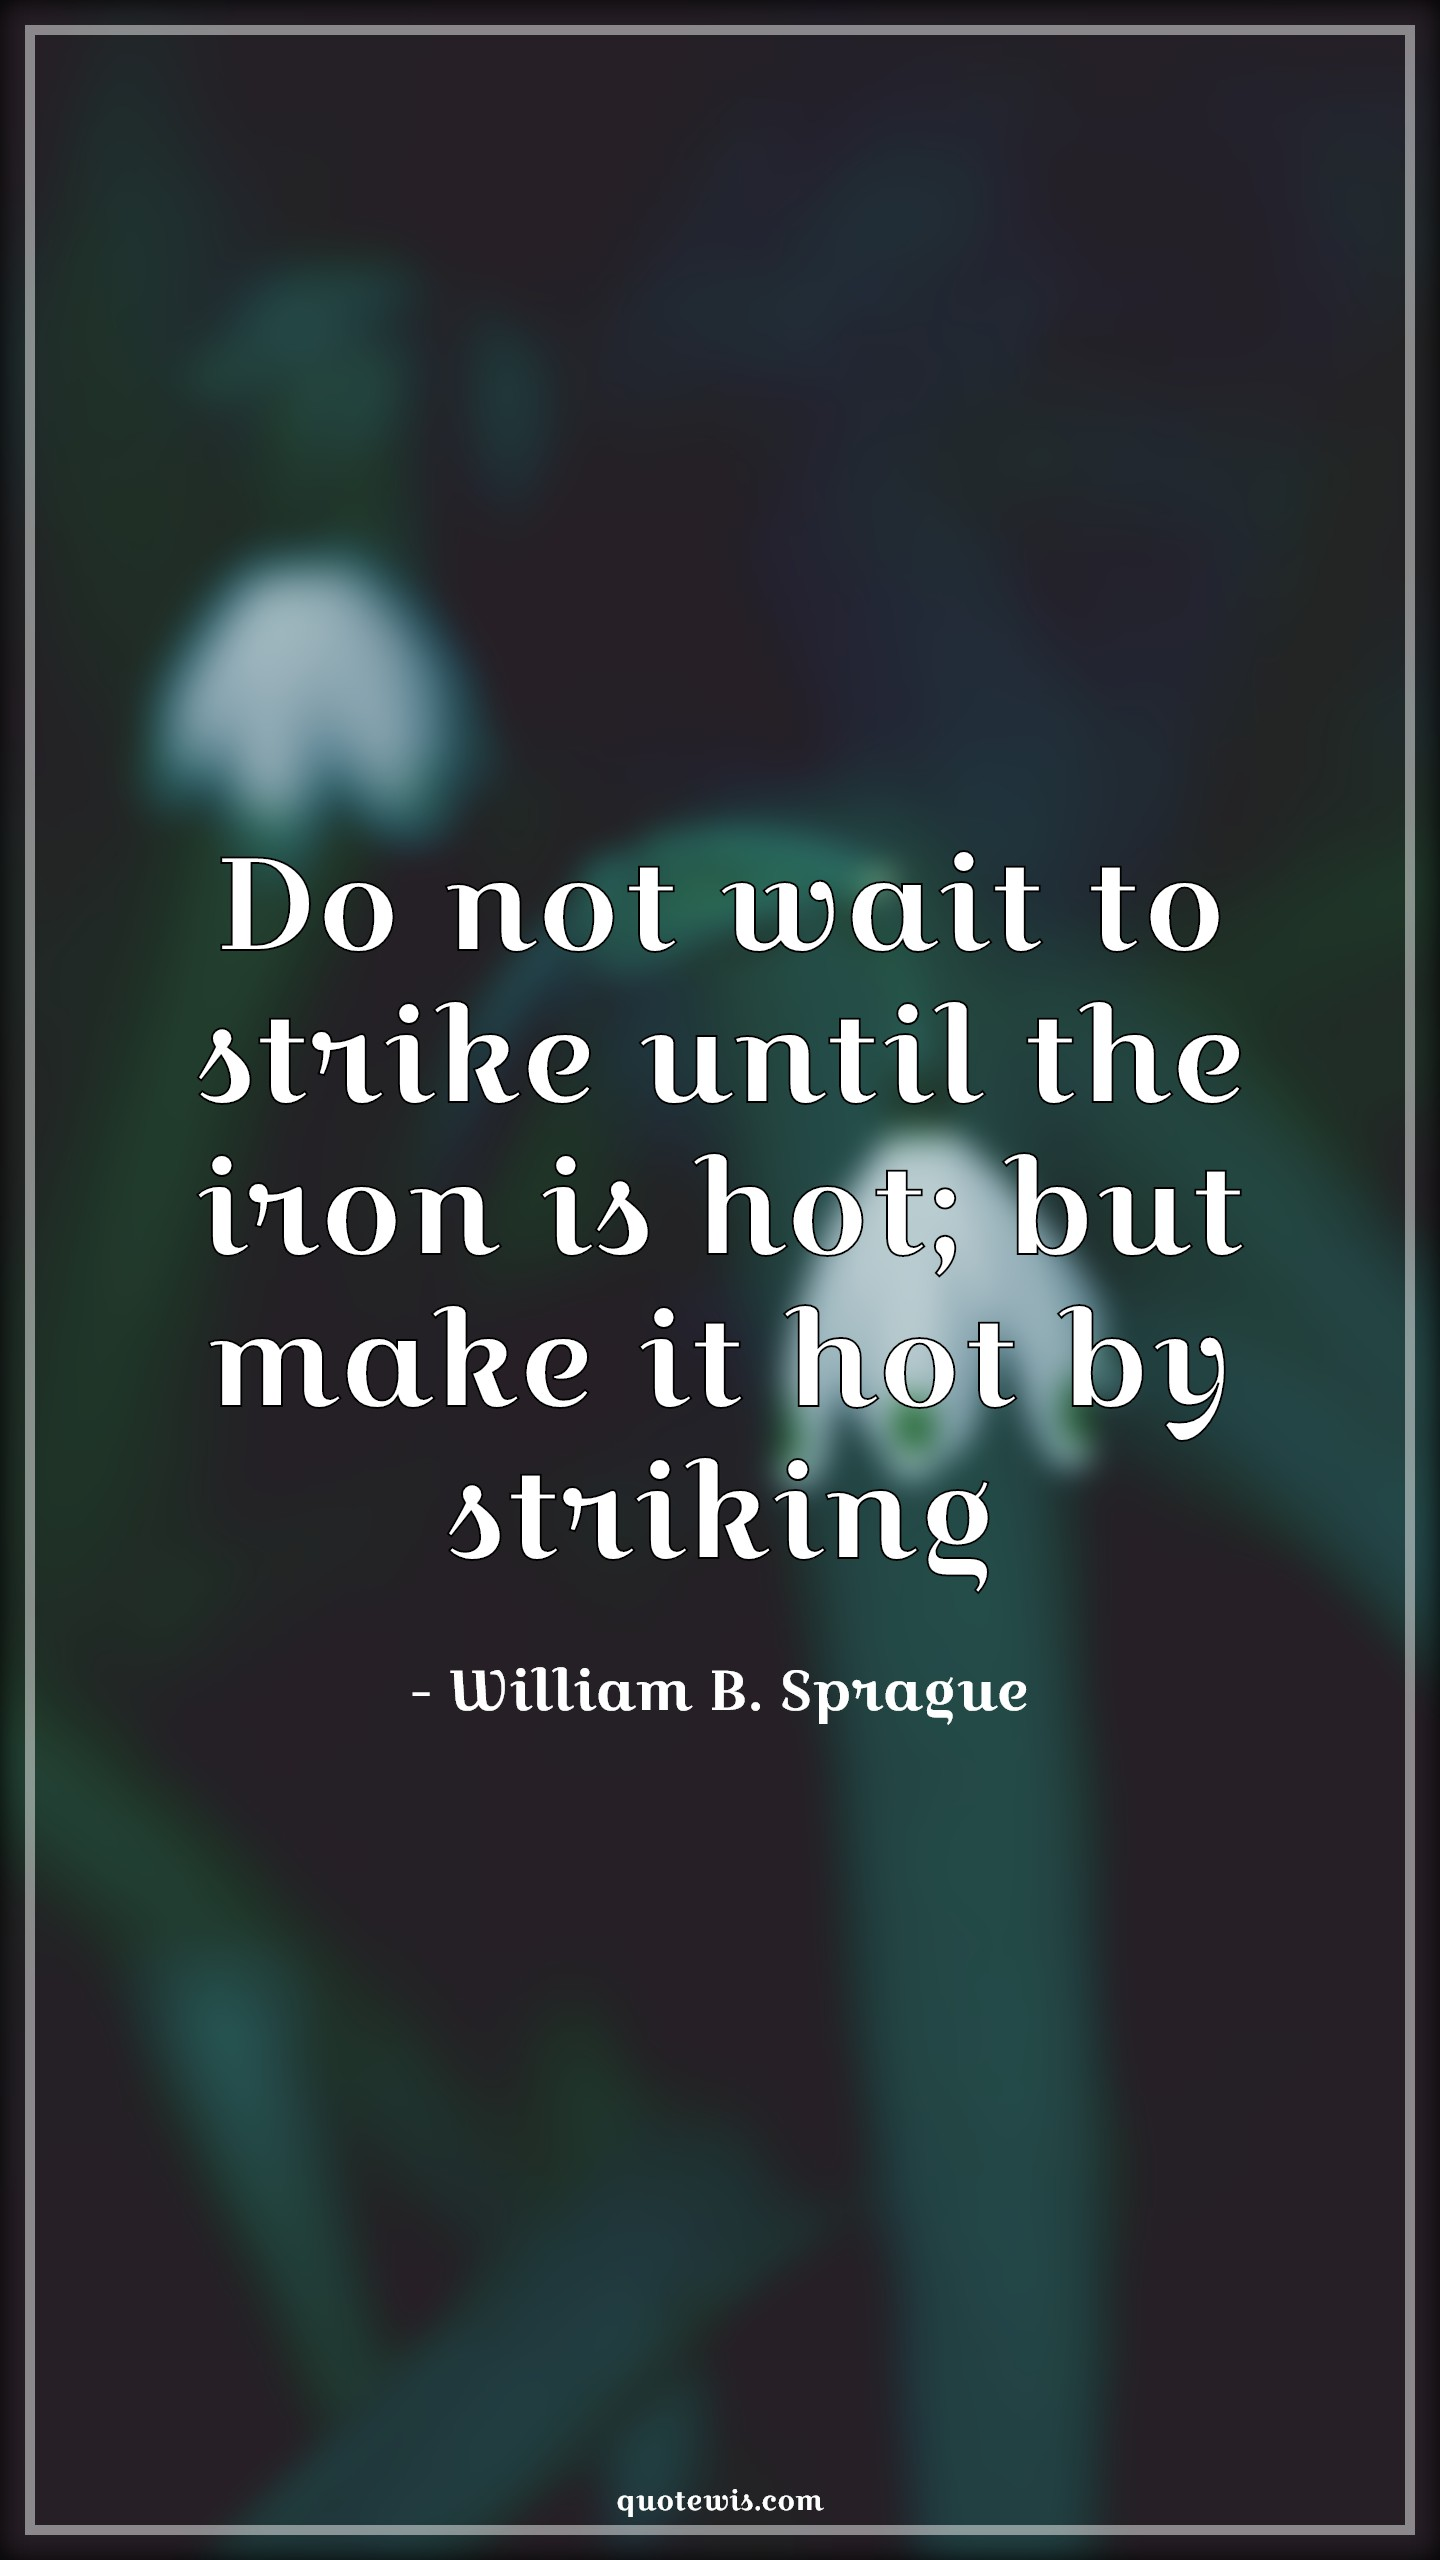 Do not wait to strike until the iron is hot; but make it hot by striking